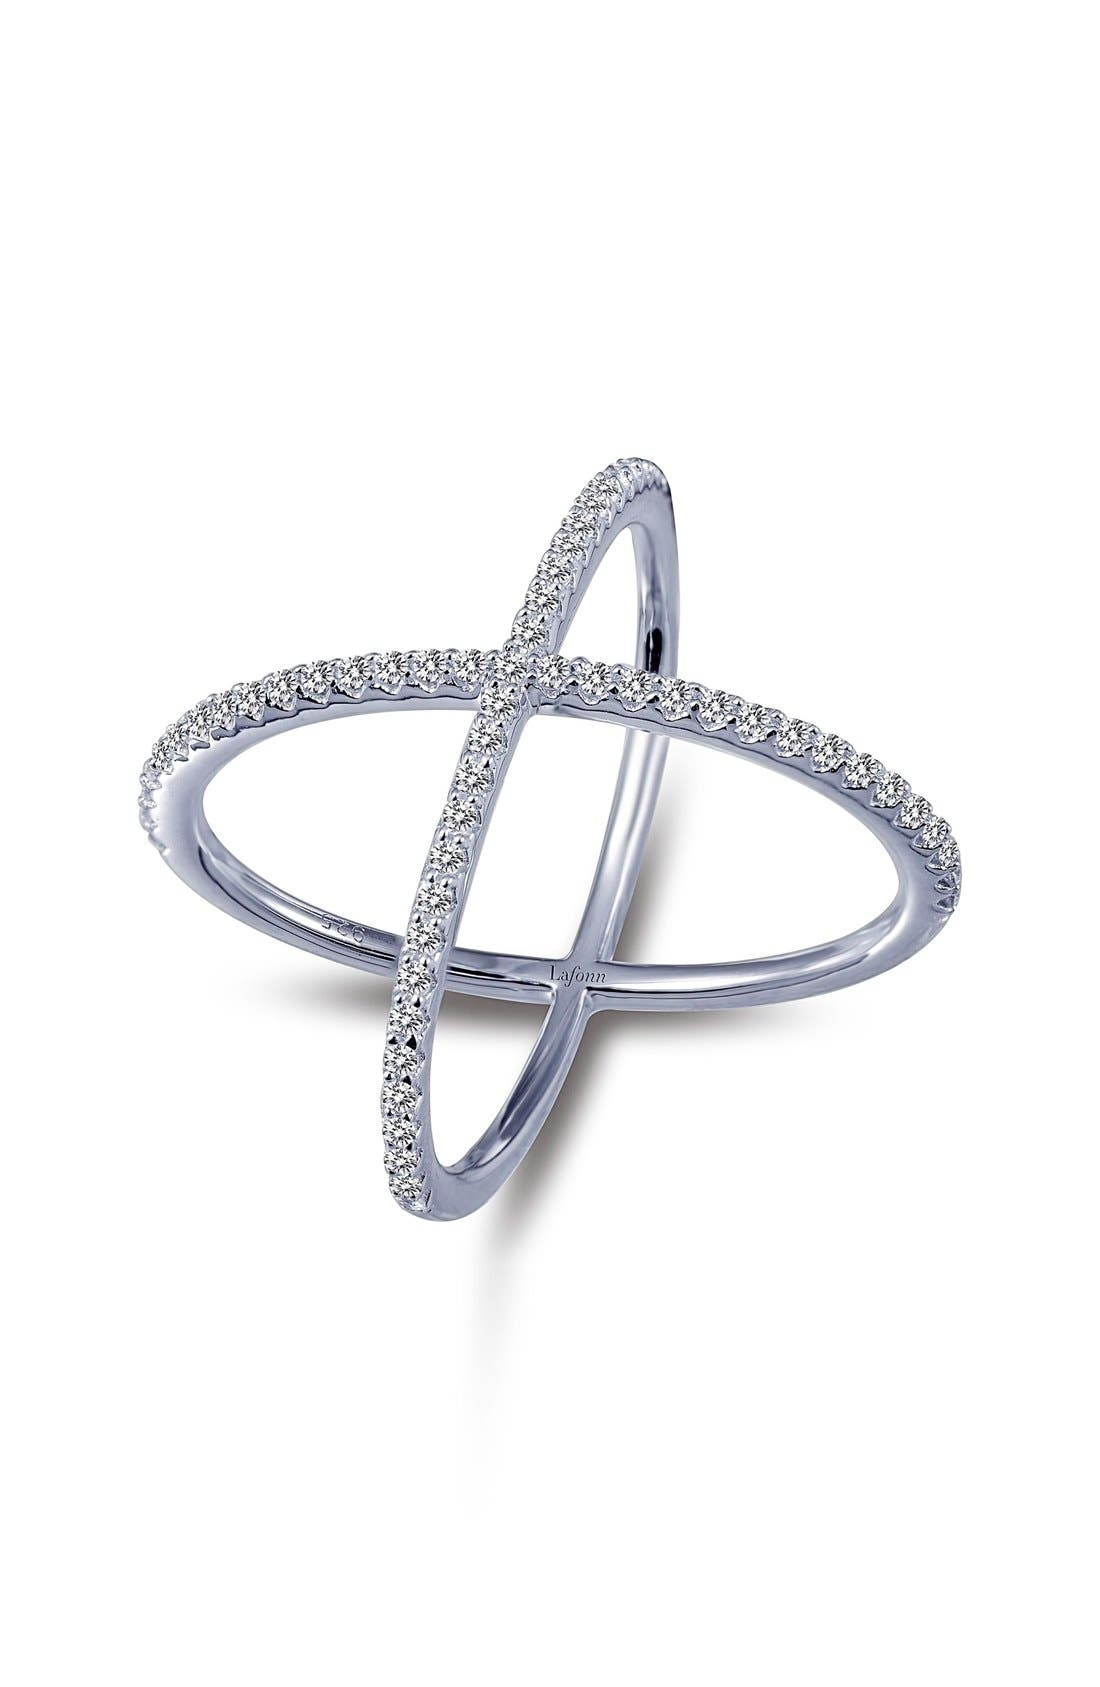 'Lassaire' Openwork Ring,                         Main,                         color, Silver